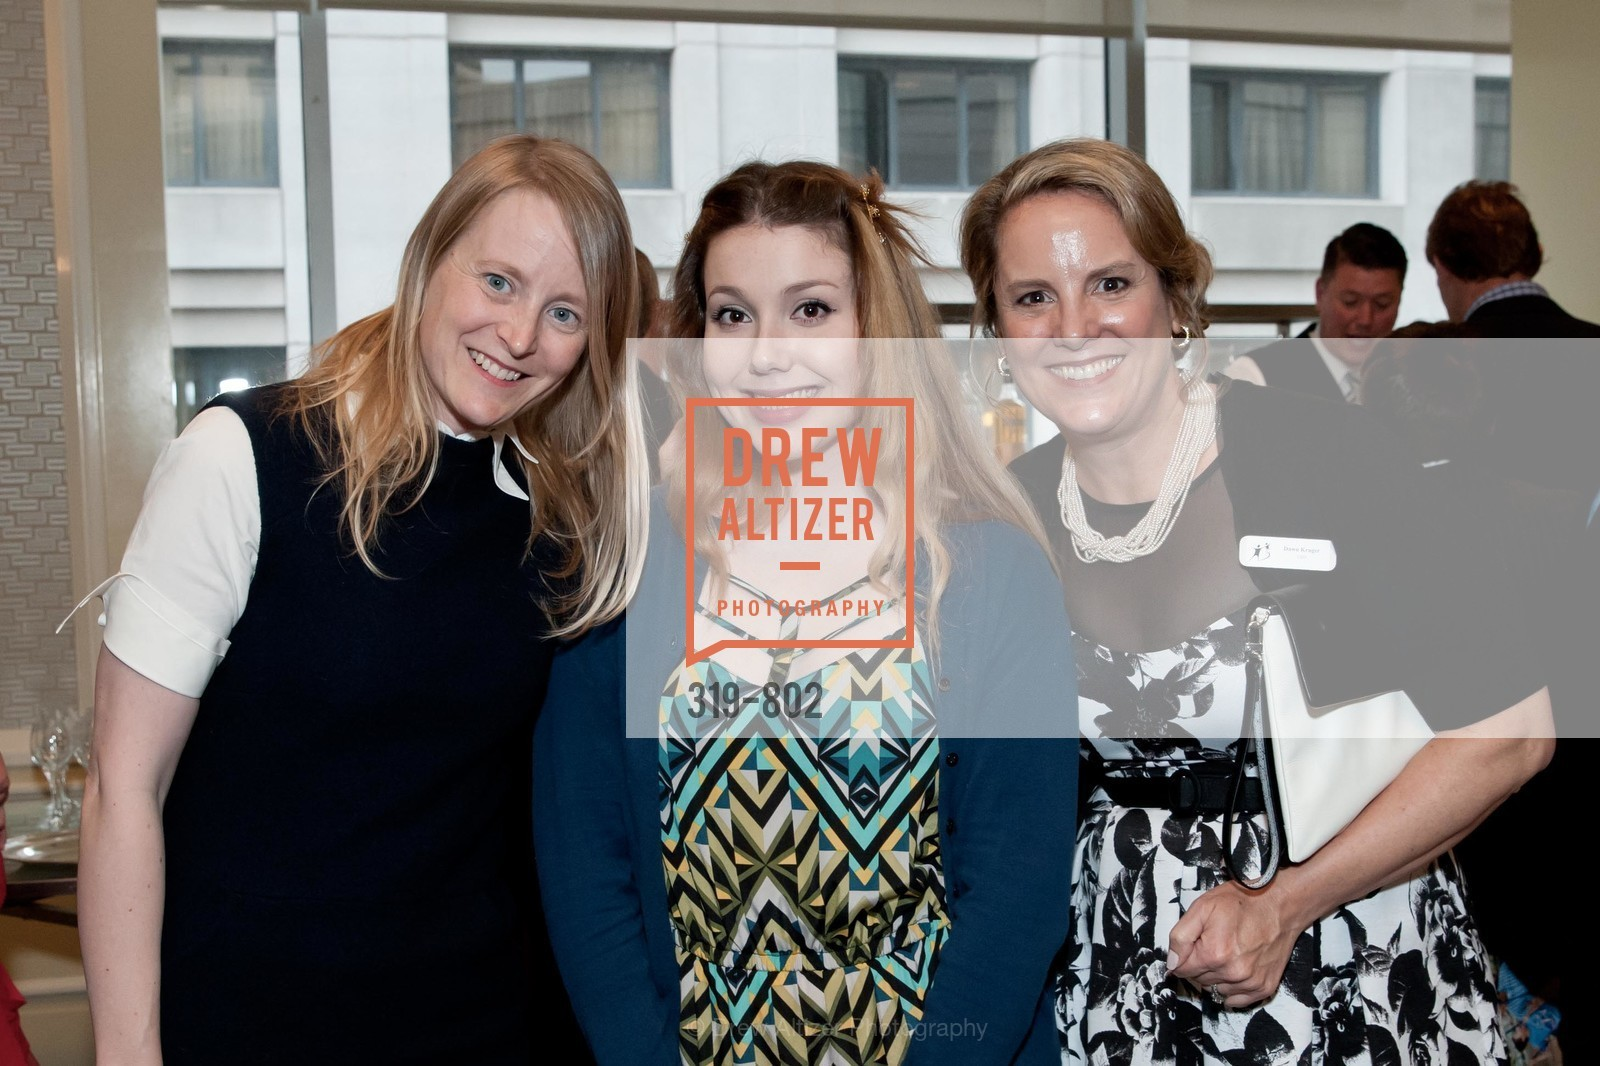 Elaine Wherry, Isabella Carrasco, Dawn Kruger, MR PORTER Celebrate The San Francisco Issue of The Journal, US, April 24th, 2015,Drew Altizer, Drew Altizer Photography, full-service agency, private events, San Francisco photographer, photographer california